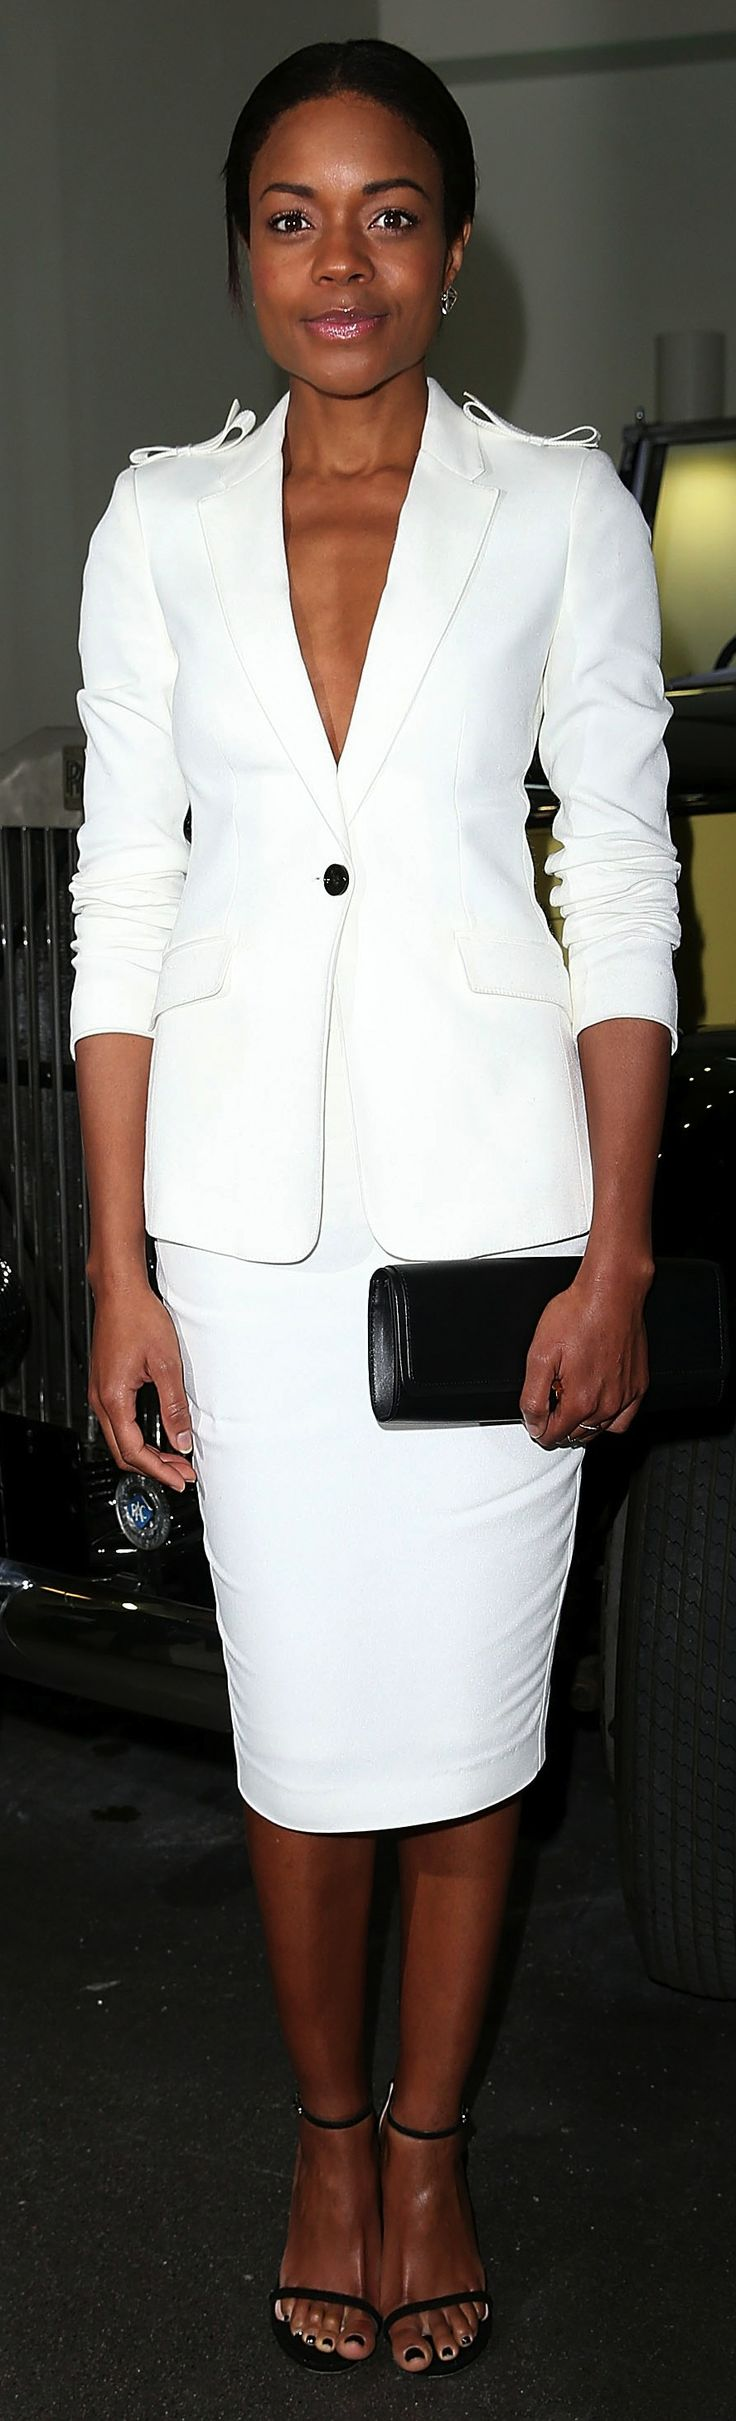 British actress Naomie Harris wearing Burberry tailoring ahead of the Bond in Motion exhibition opening in London